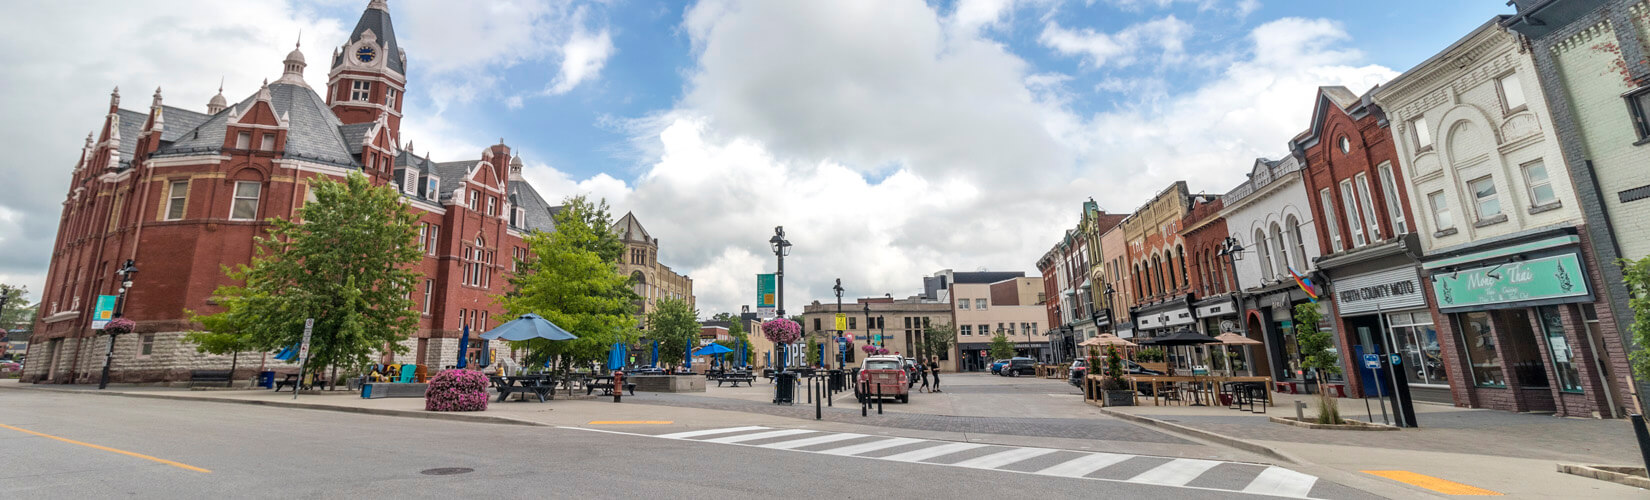 12+ Best Things to Do in Stratford Ontario For a Fabulous Getaway :: I've Been Bit! Travel Blog